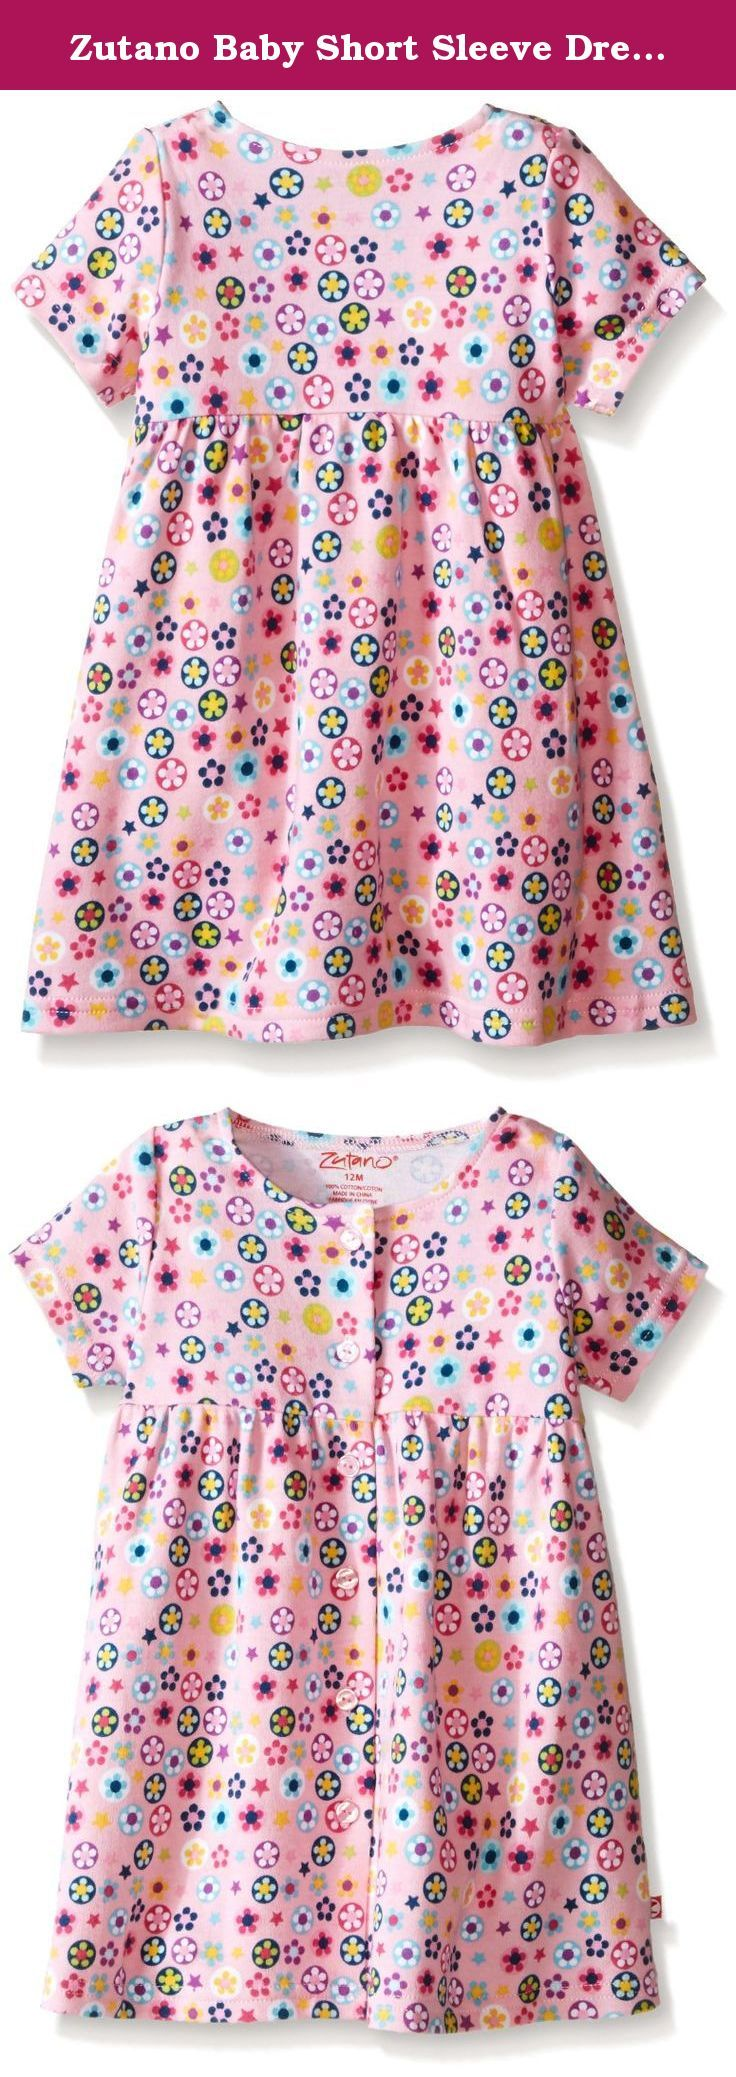 Zutano Baby Short Sleeve Dress, Flower Shower, 6 Months. Our short sleeve, cute-as-a-button dress is a definite must-have for every wardrobe. Made with our wonderfully soft, 100 percent cotton fabric, this dress looks great on the playground or sitting for sunday brunch. Perfect for season-to-season transitions too. Just pair it with a cozy fleece jacket and tights and you're ready for blustery winter weather.